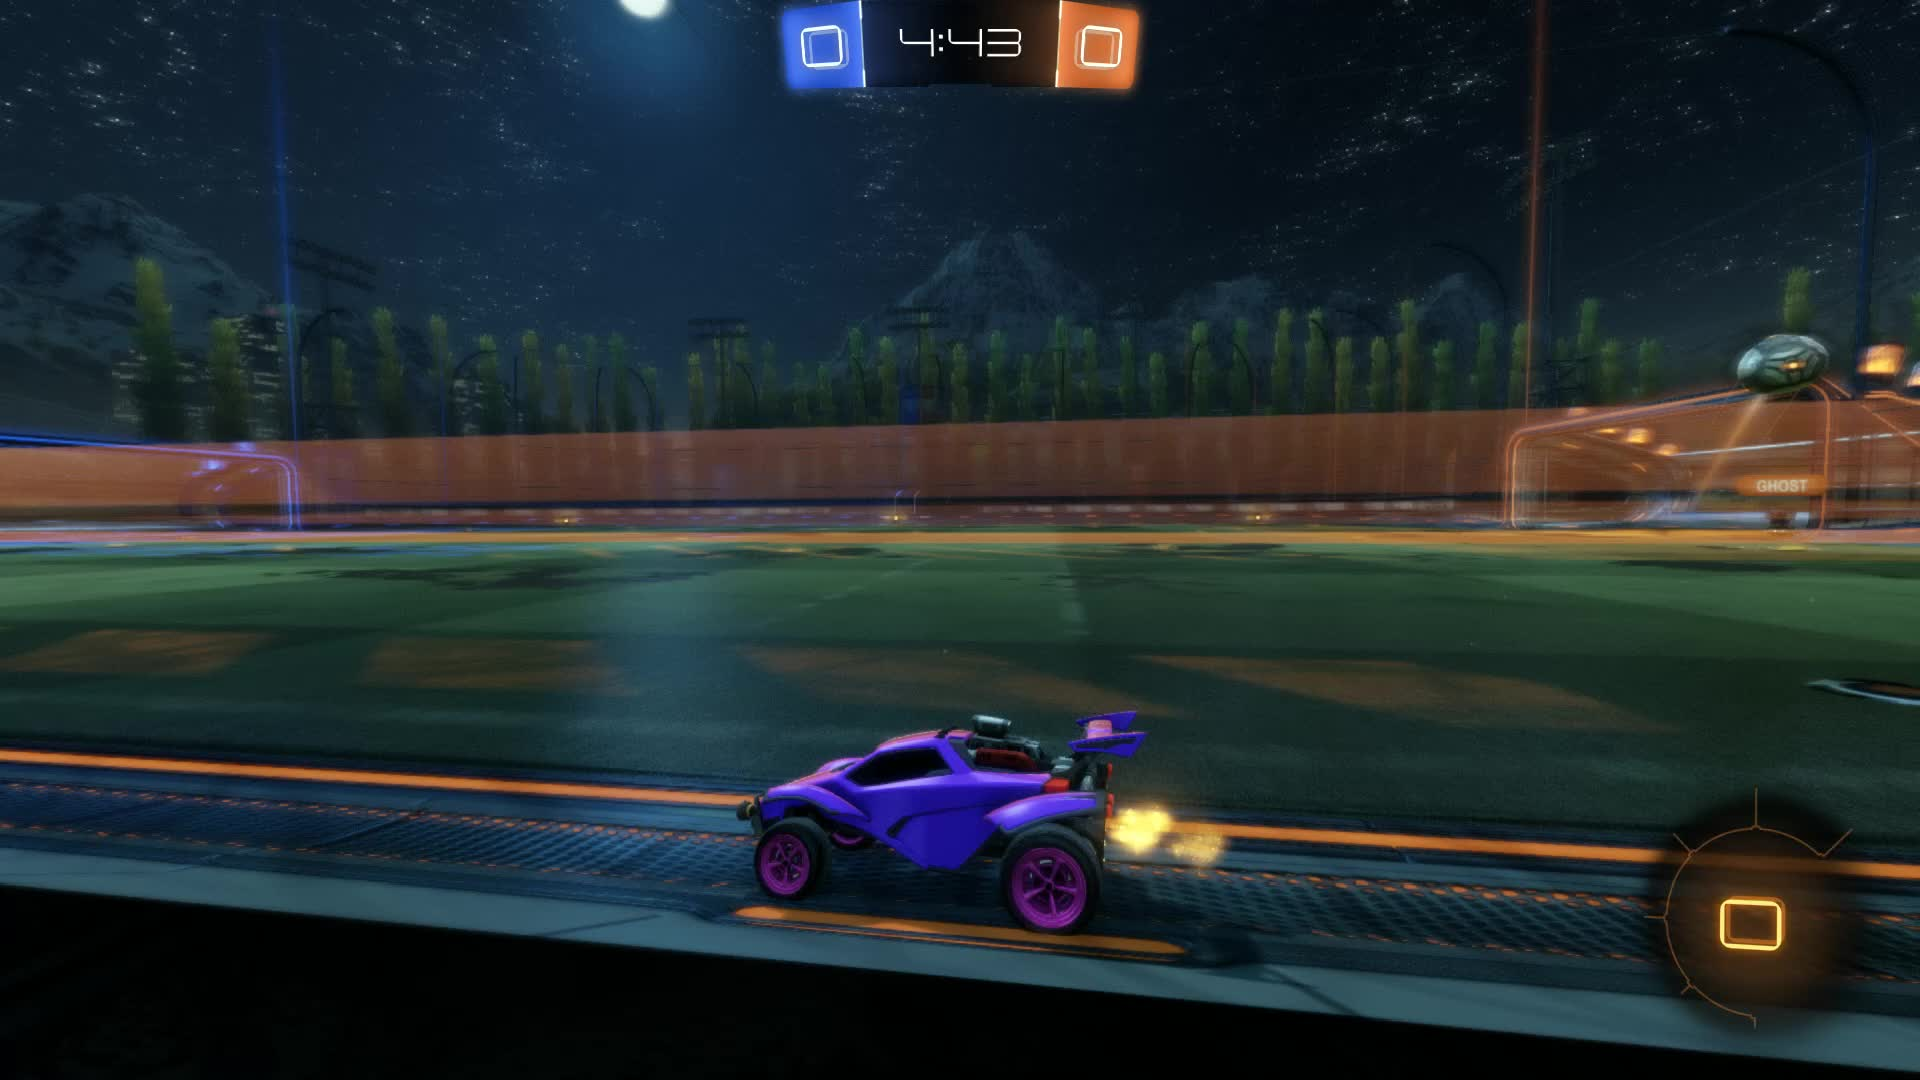 Gif Your Game, GifYourGame, Goal, Rocket League, RocketLeague, wxvxdxsh, Goal 1: wxvxdxsh GIFs